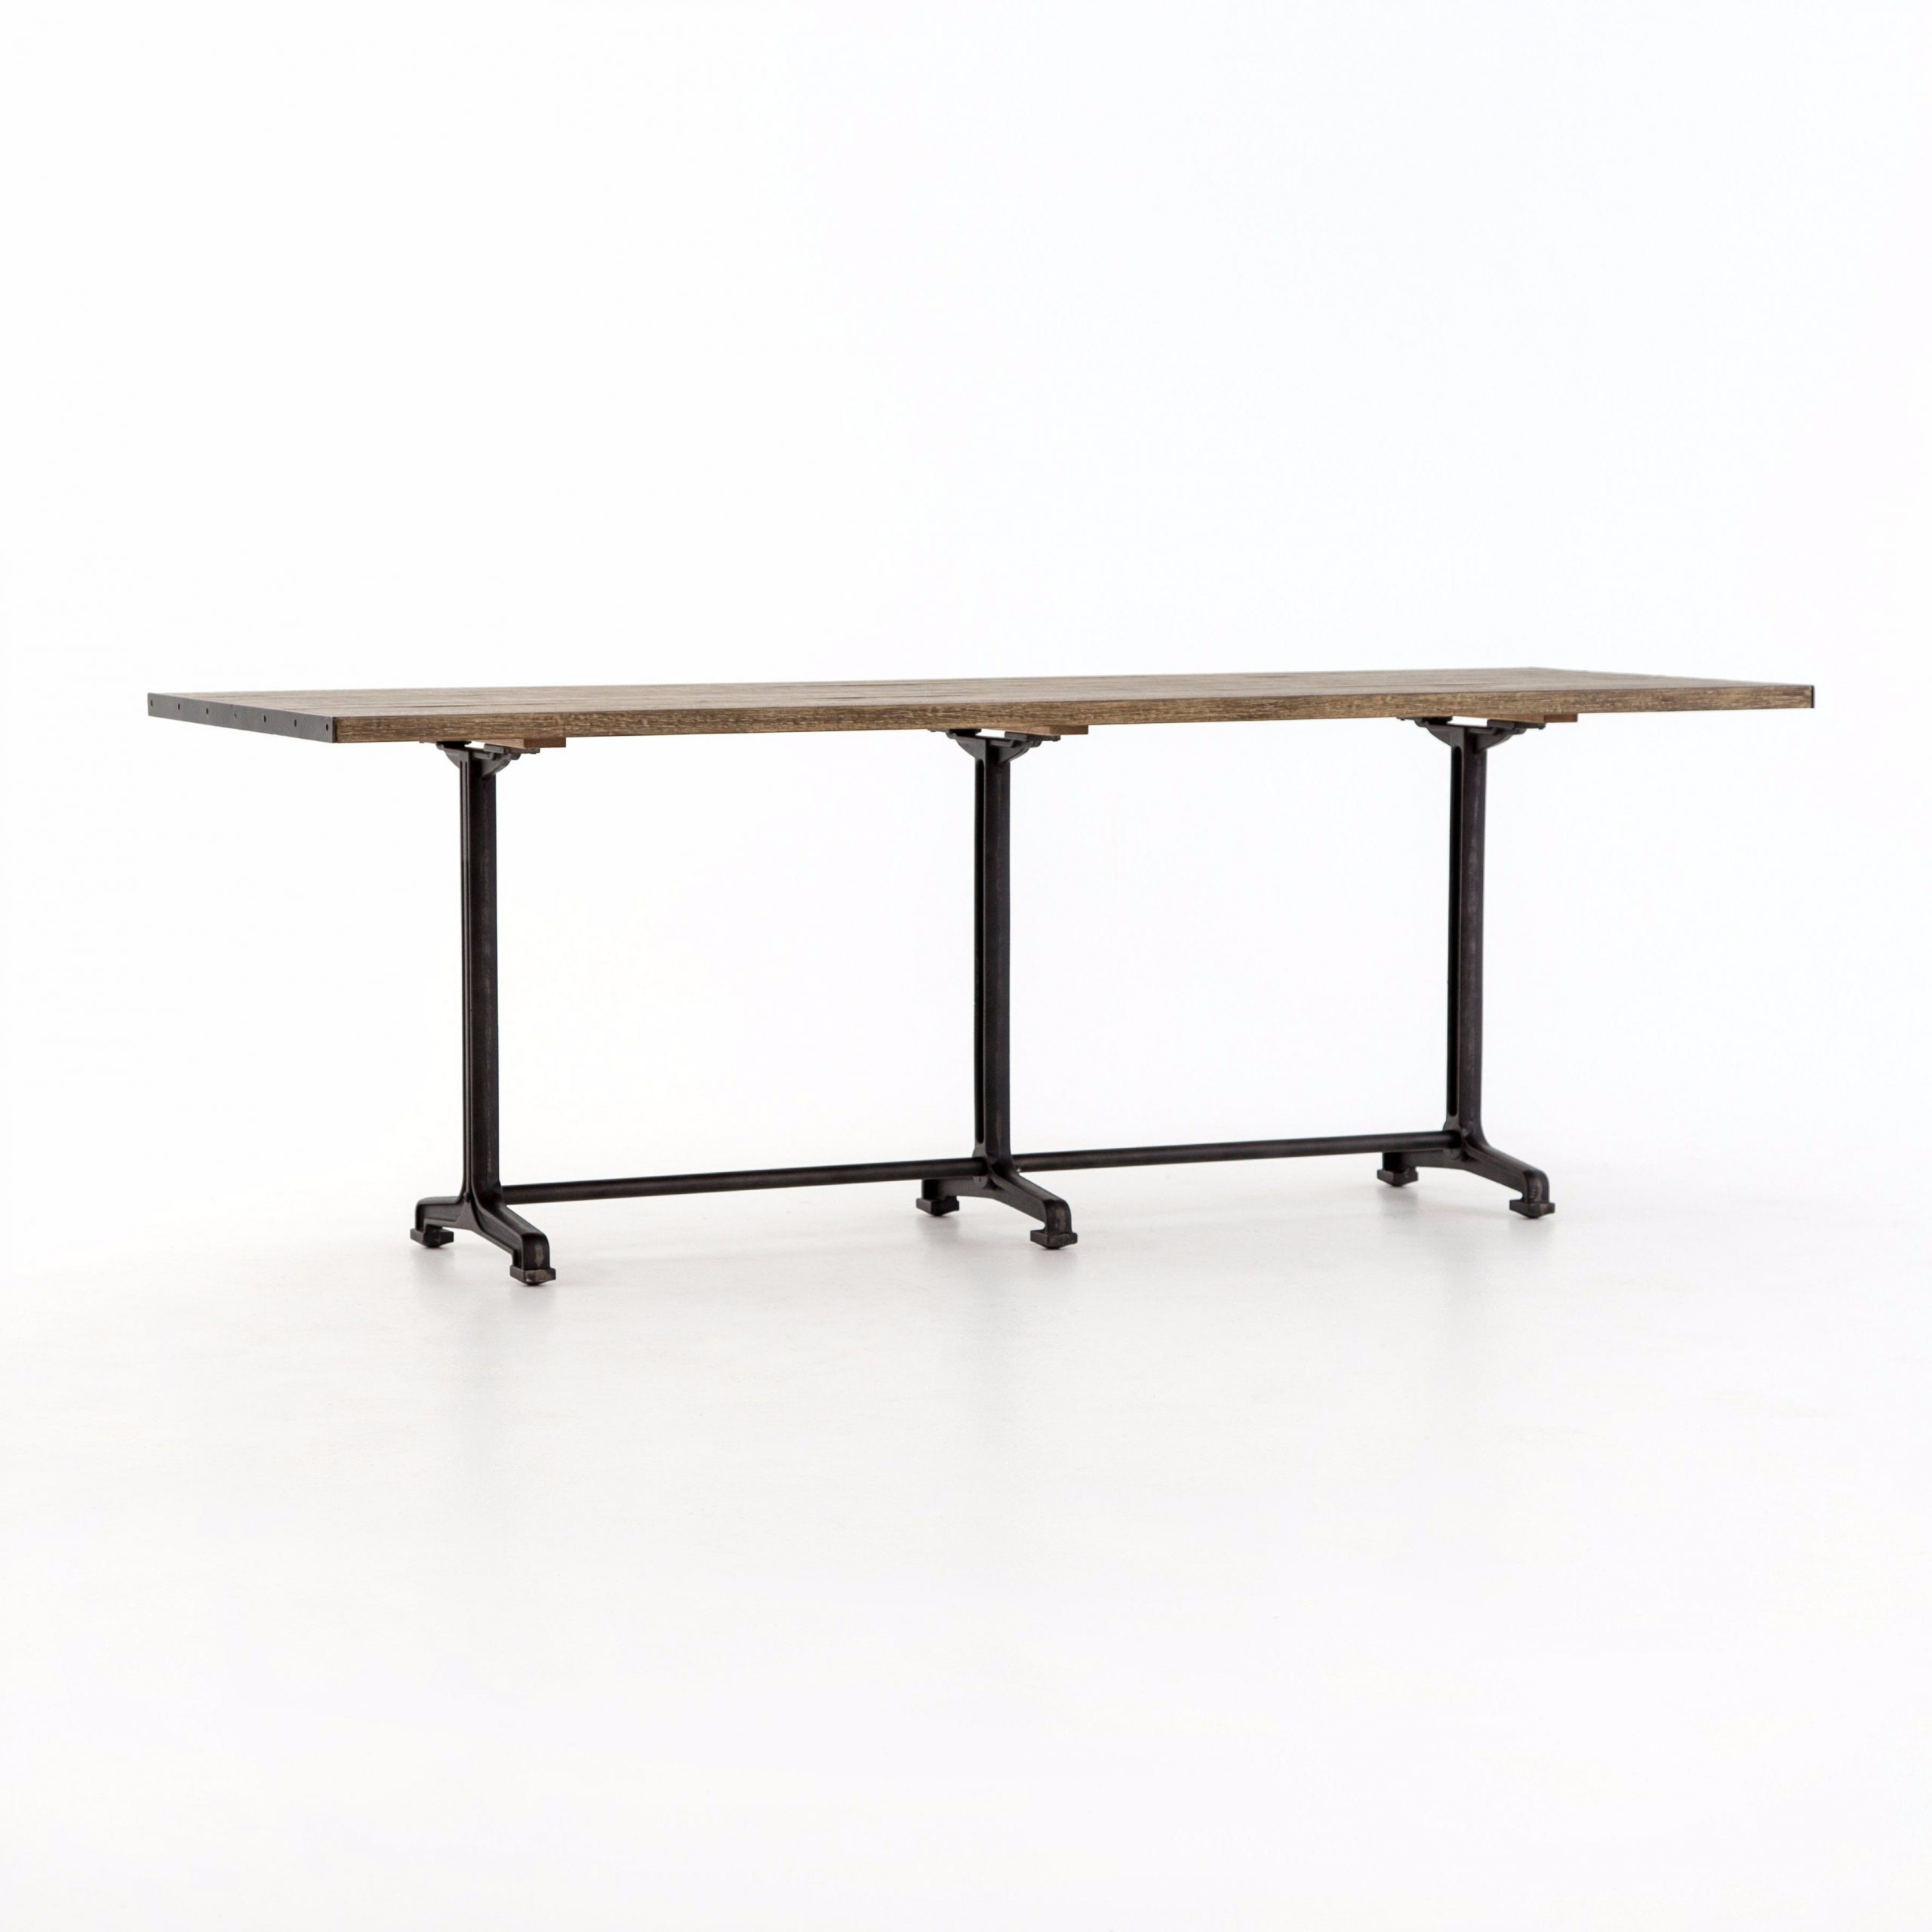 Dining Table 1440268 | Products | Reclaimed Wood Dining With Regard To Recent Bartol Reclaimed Dining Tables (View 7 of 25)